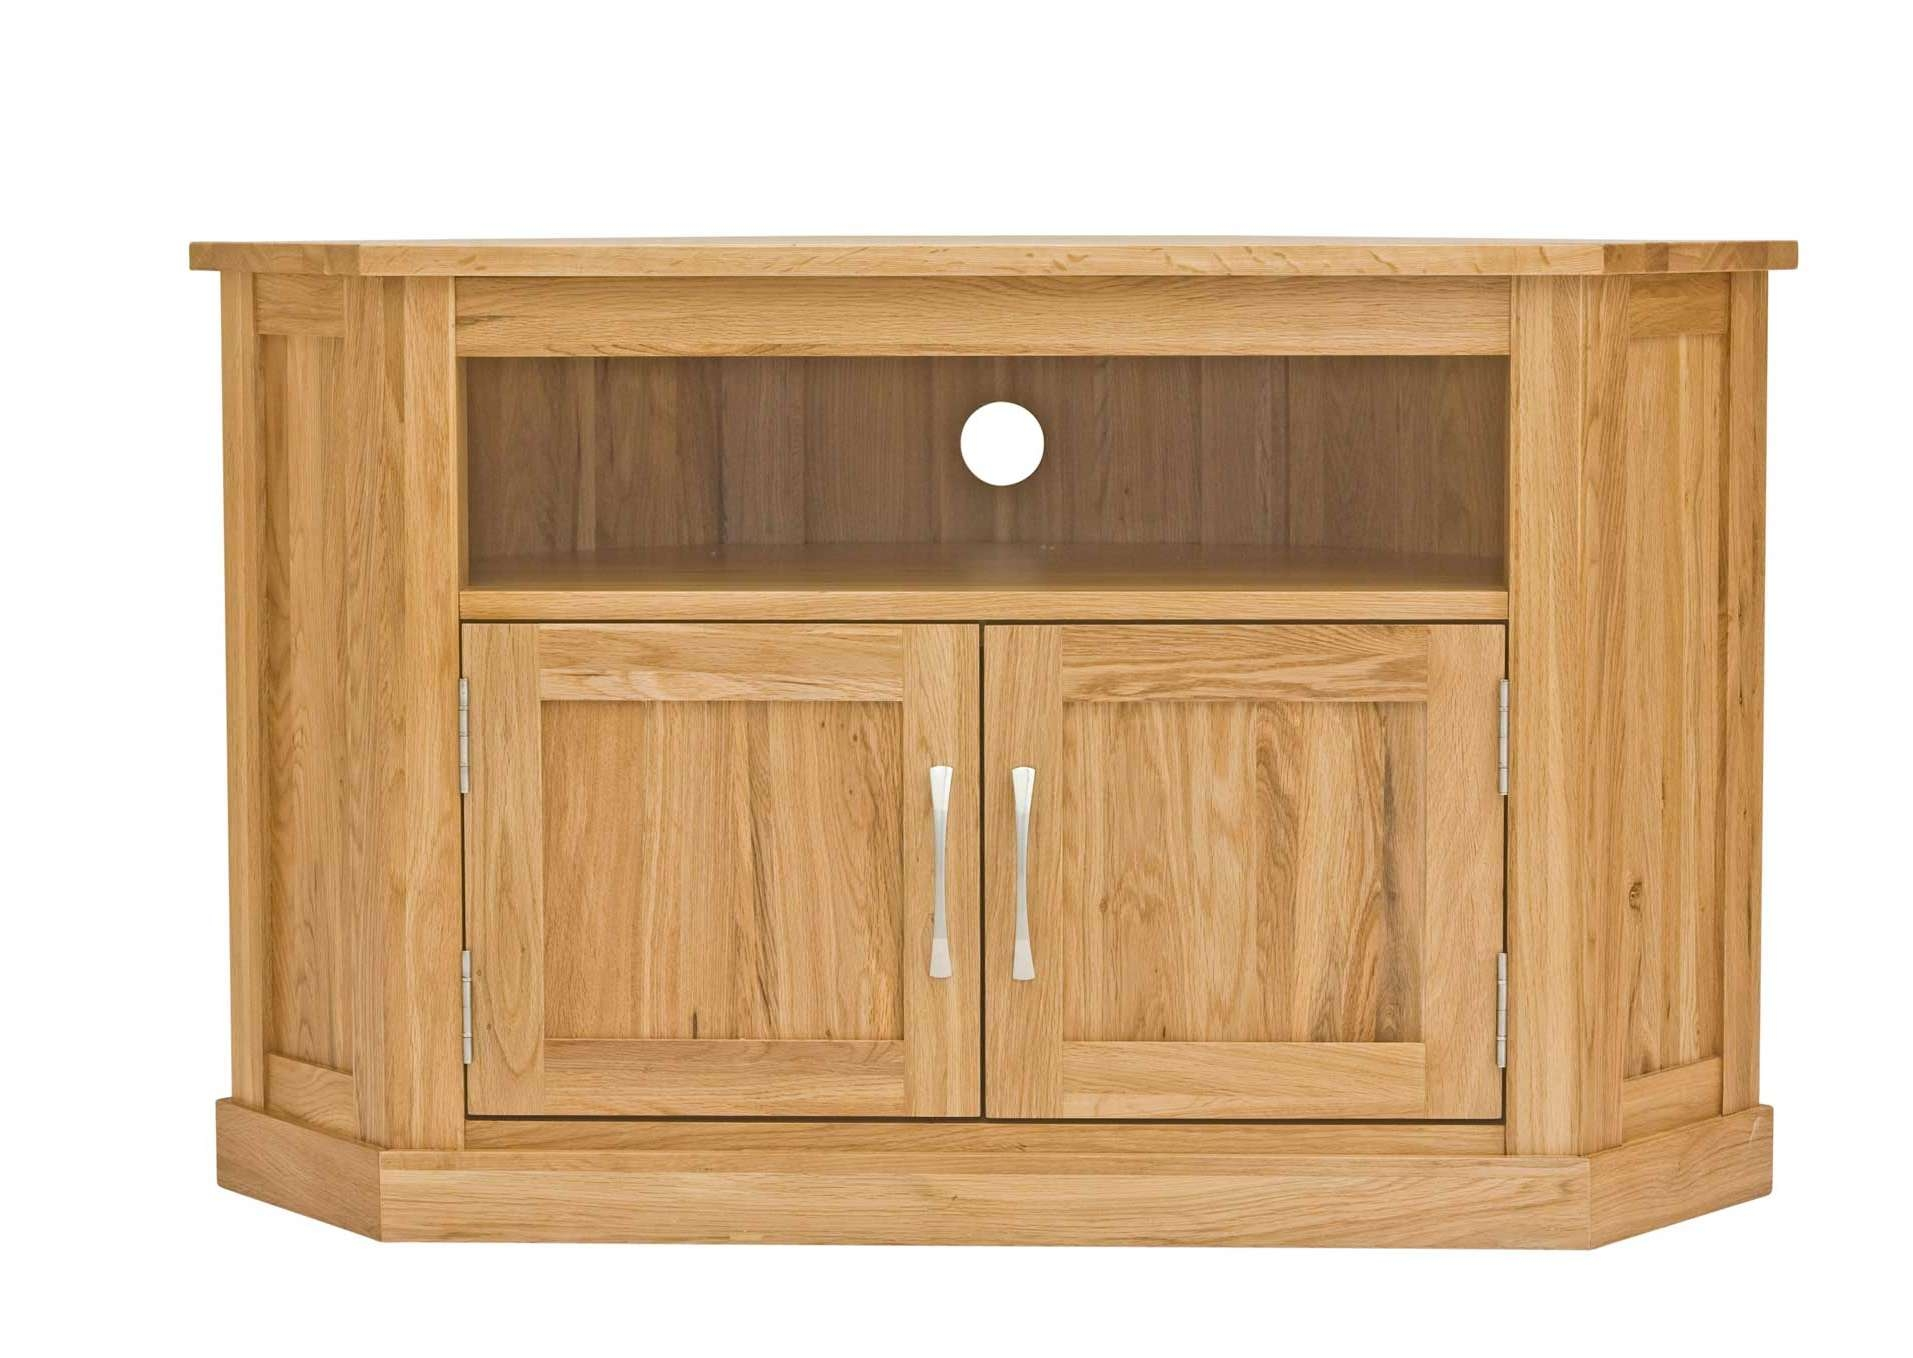 Ordinaire Classic Oak Corner Television Cabinet | Hampshire Furniture For Corner  Wooden Tv Stands (View 1